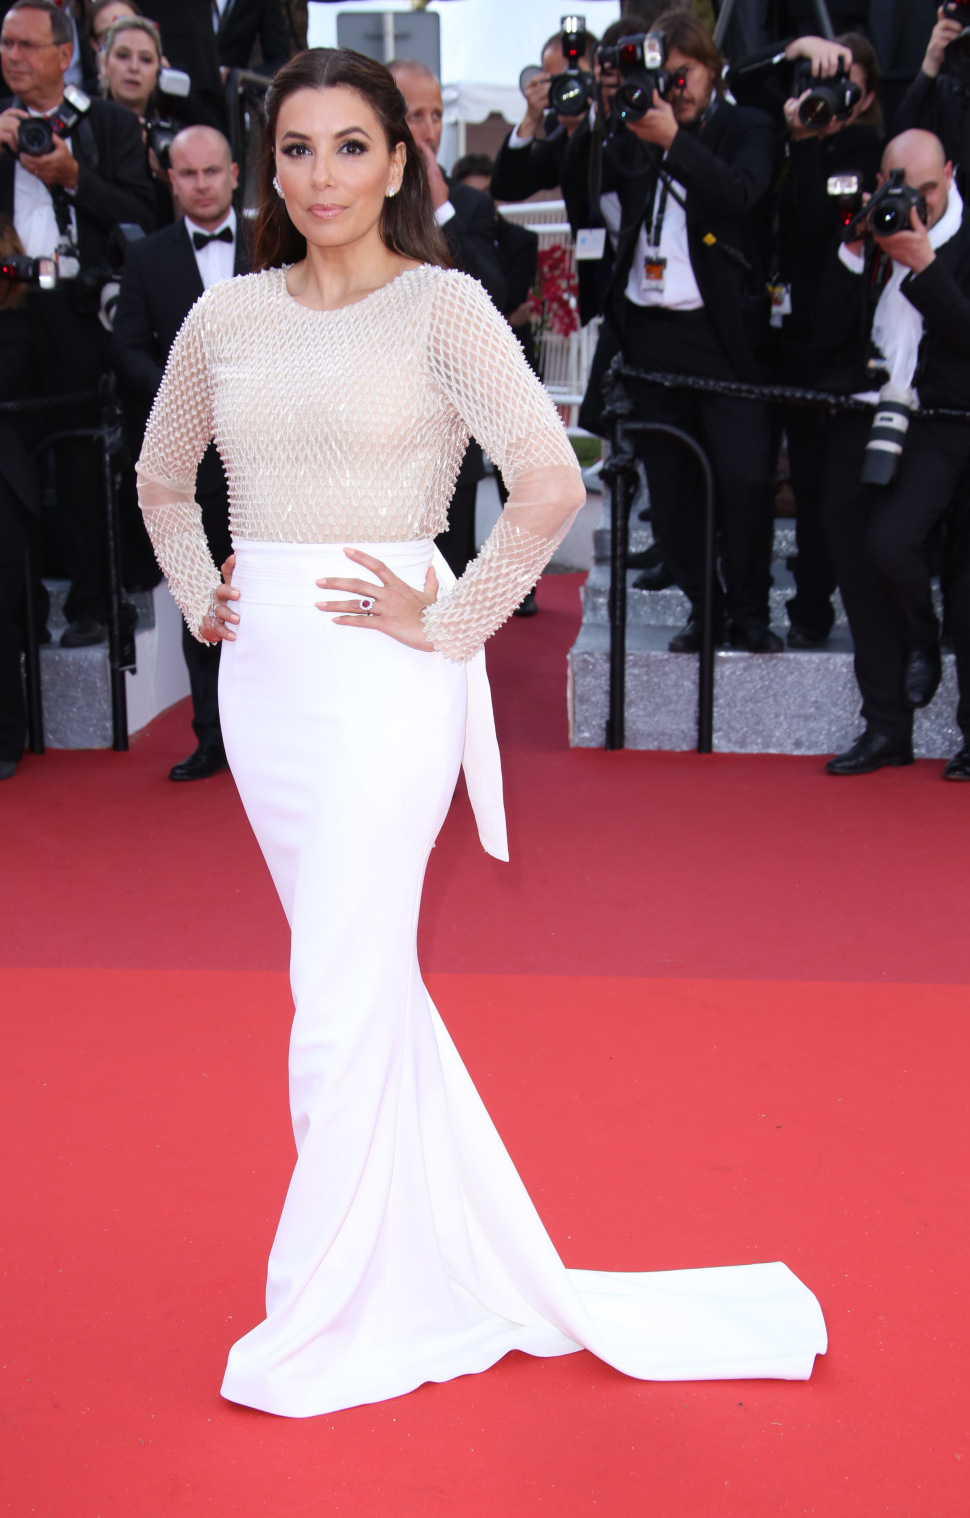 Mandatory Credit: Photo by Matt Baron/BEI/Shutterstock (5682156et) Eva Longoria'Cafe Society' premiere and opening ceremony, 69th Cannes Film Festival, France - 11 May 2016